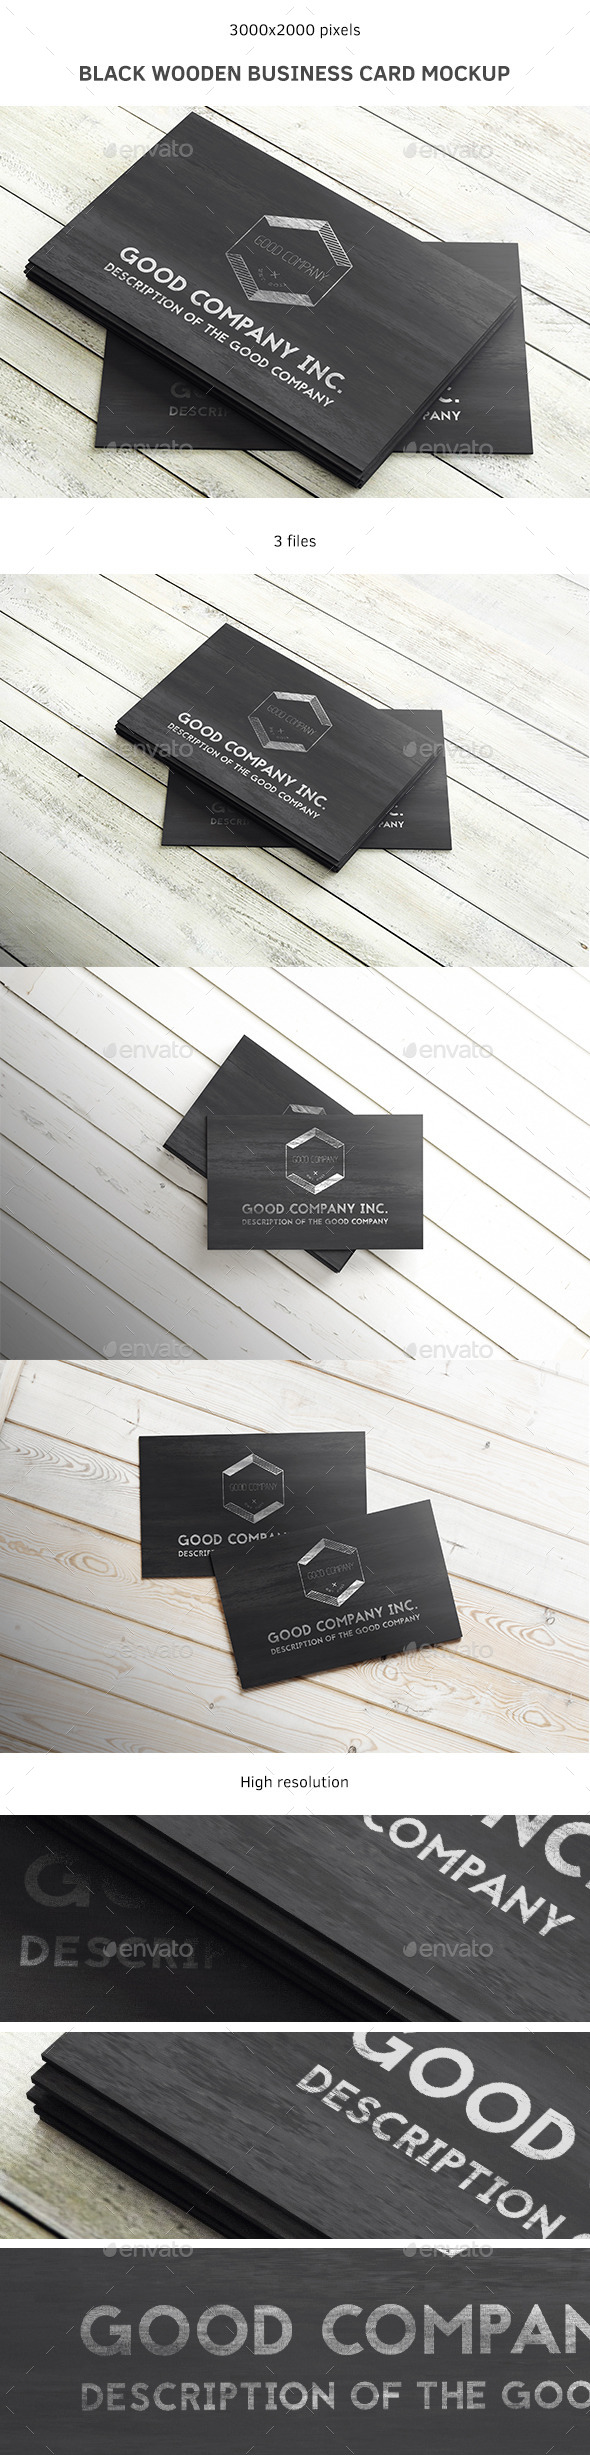 Black Wooden Business Card Mockup